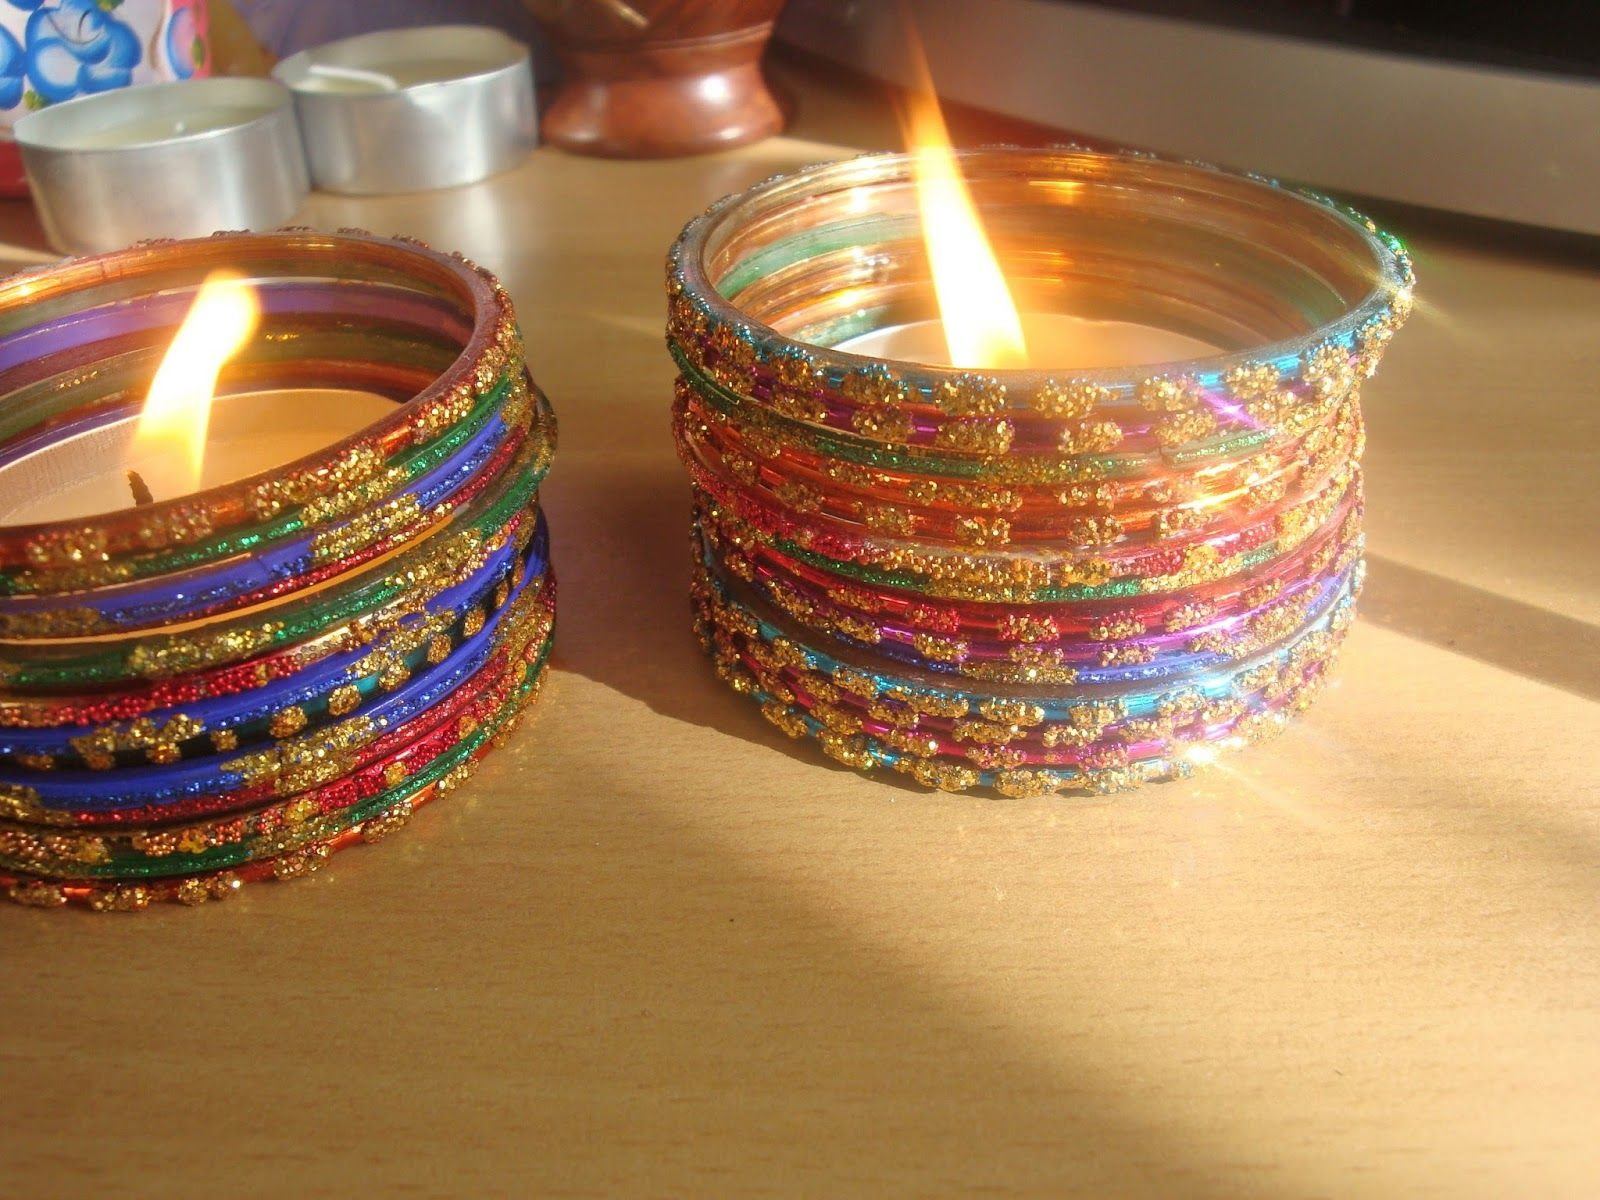 glass bangle candle holder | art | Pinterest | Bangle, Glass and ... for Ideas For Candle Decoration Competition  575lpg